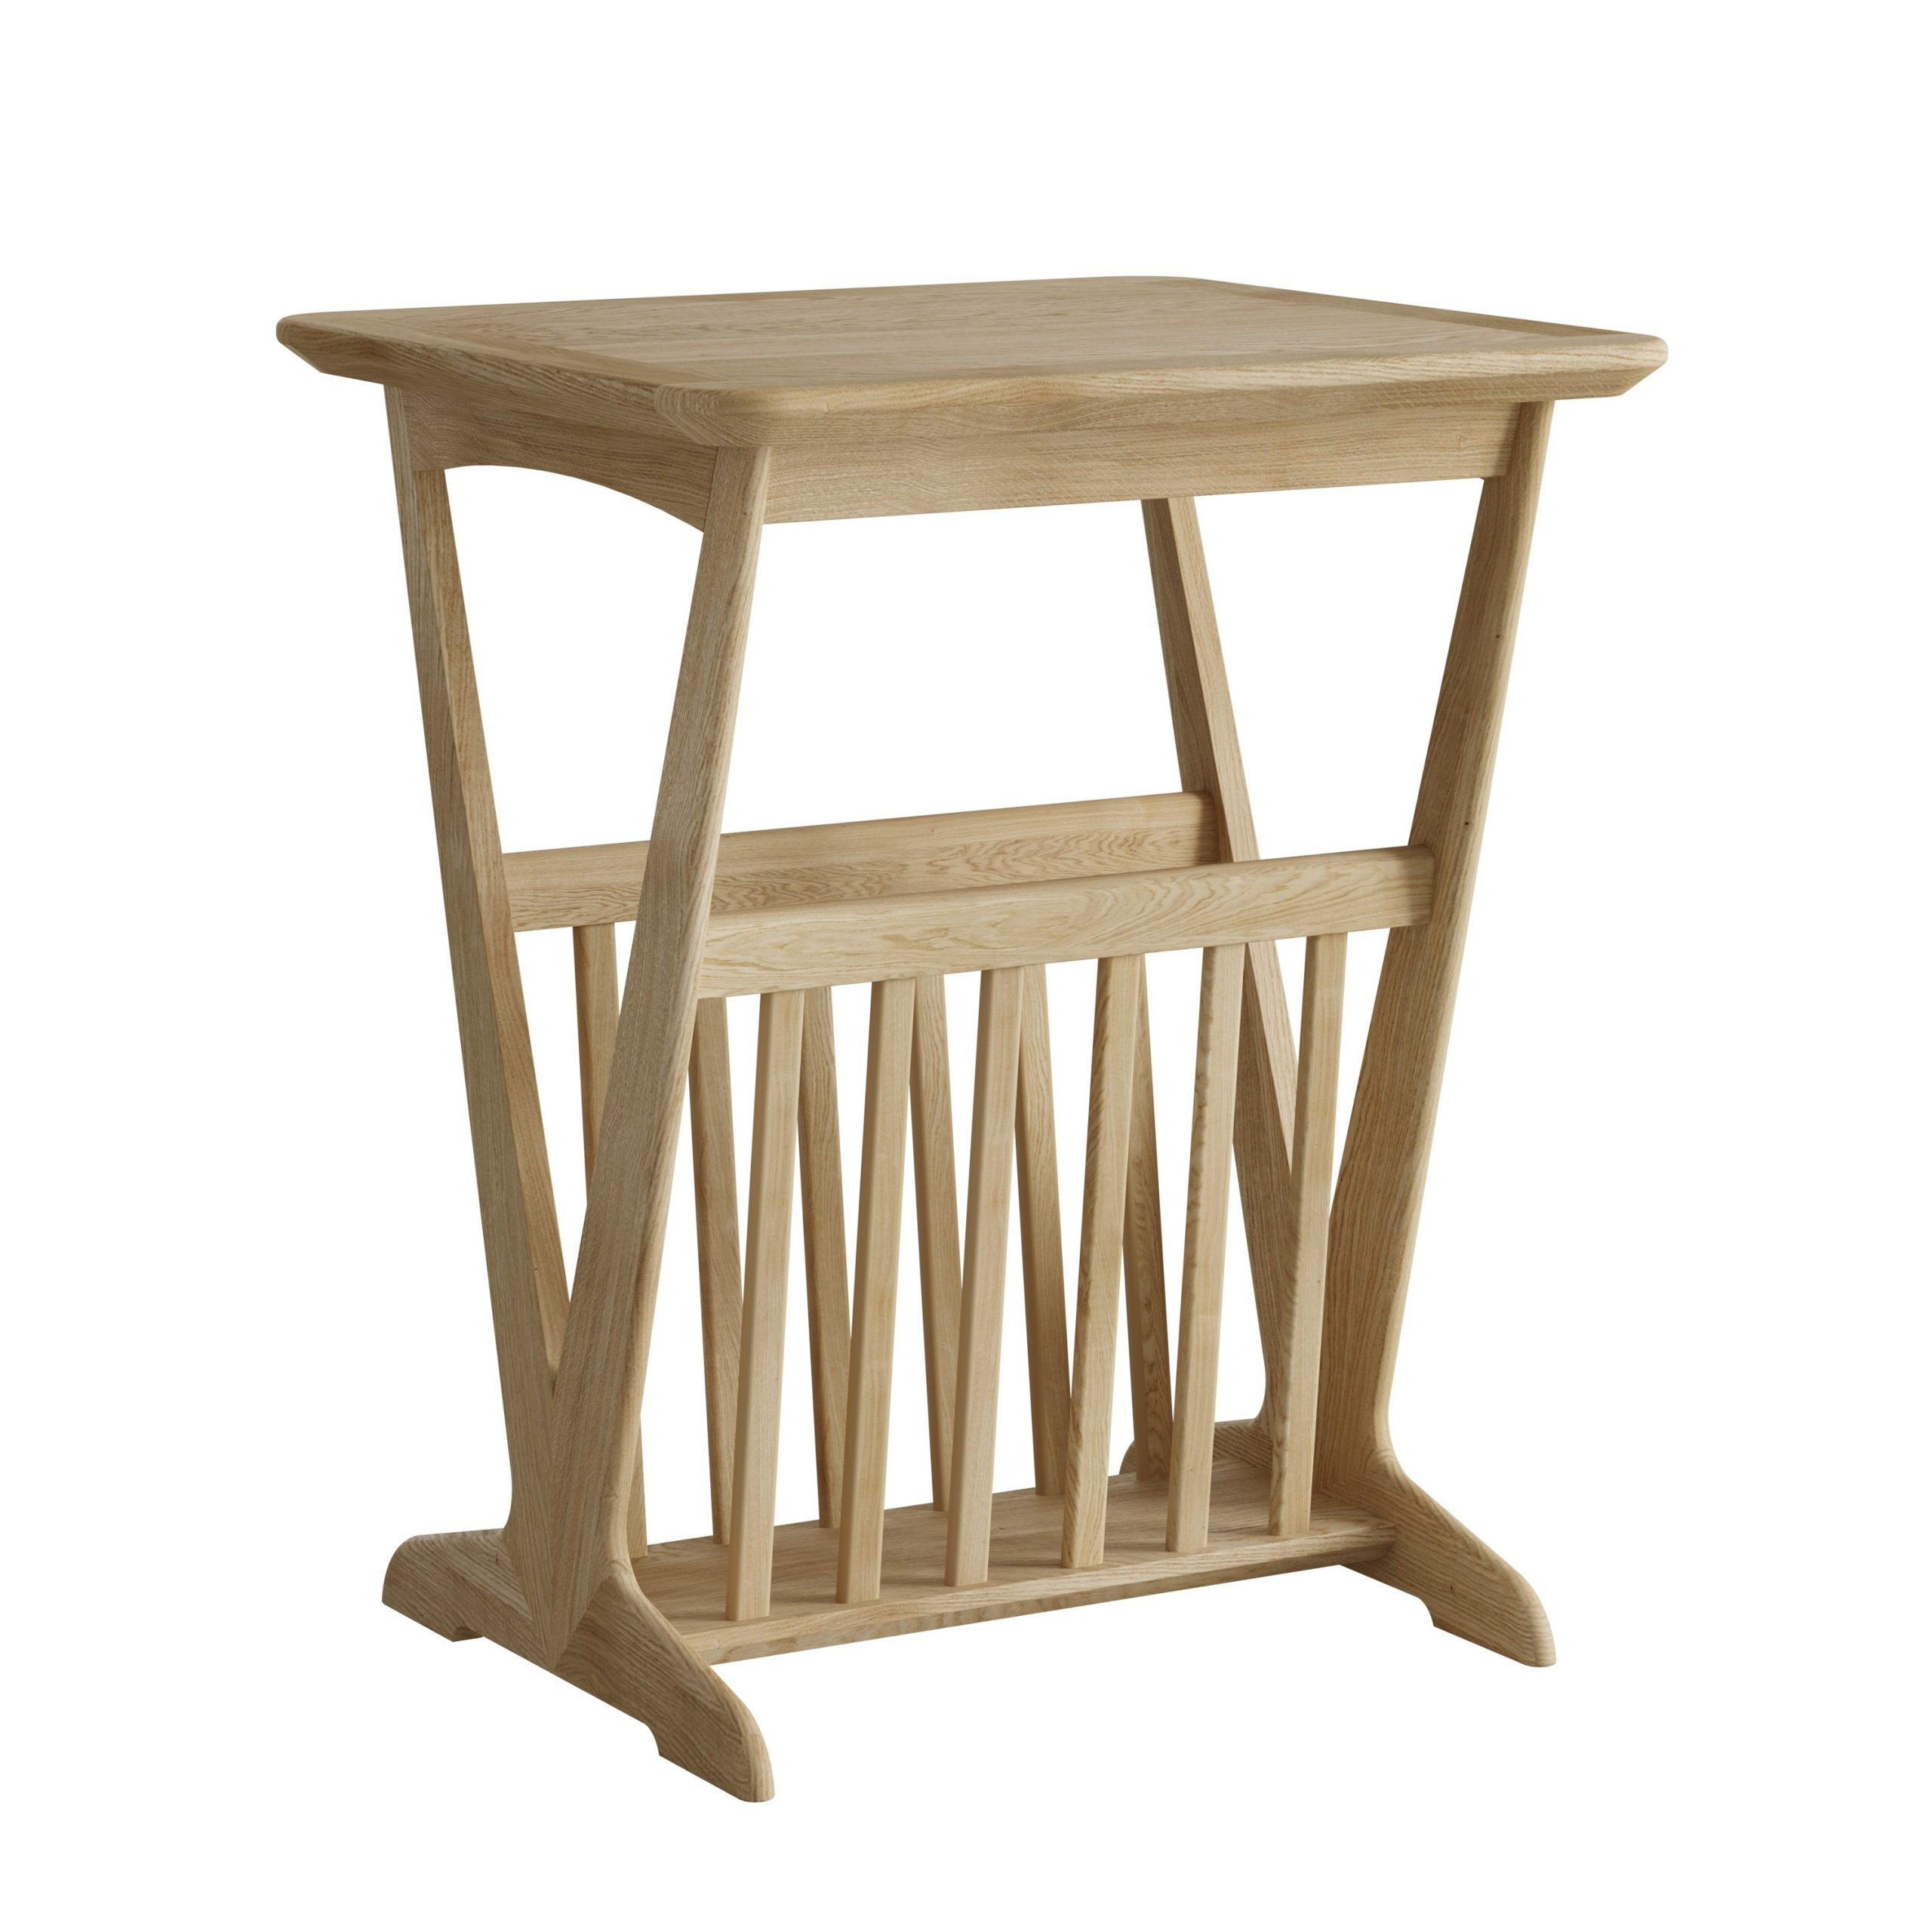 Oak Magazine Rack with Table - Our Price - Only £229